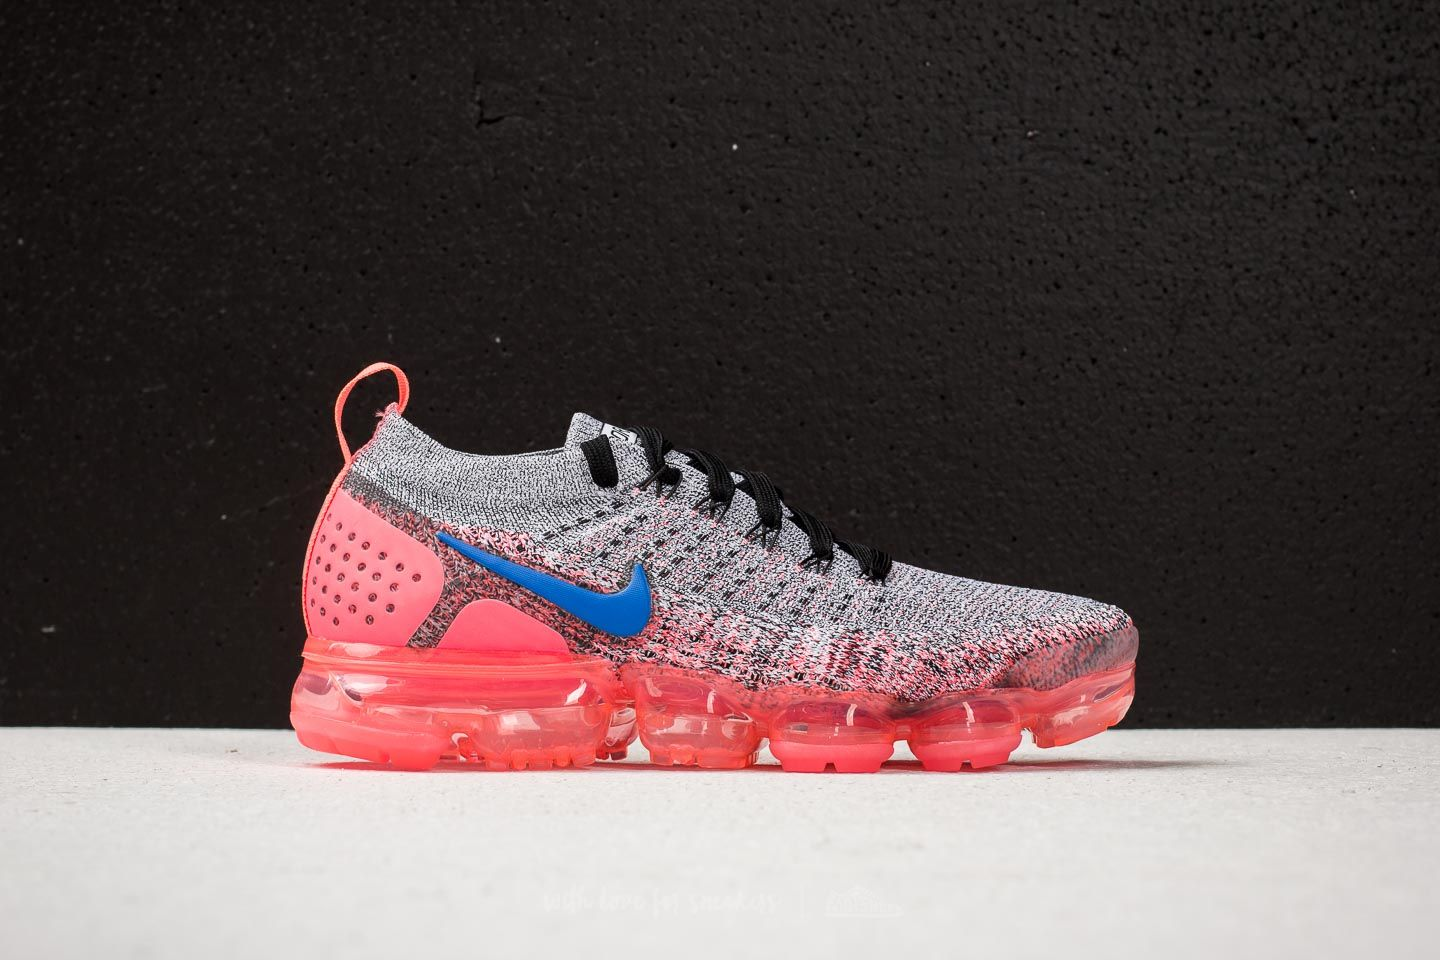 reputable site ac442 4af20 Nike Air Vapormax Flyknit 2 W White/ Ultramarine-Hot Punch ...